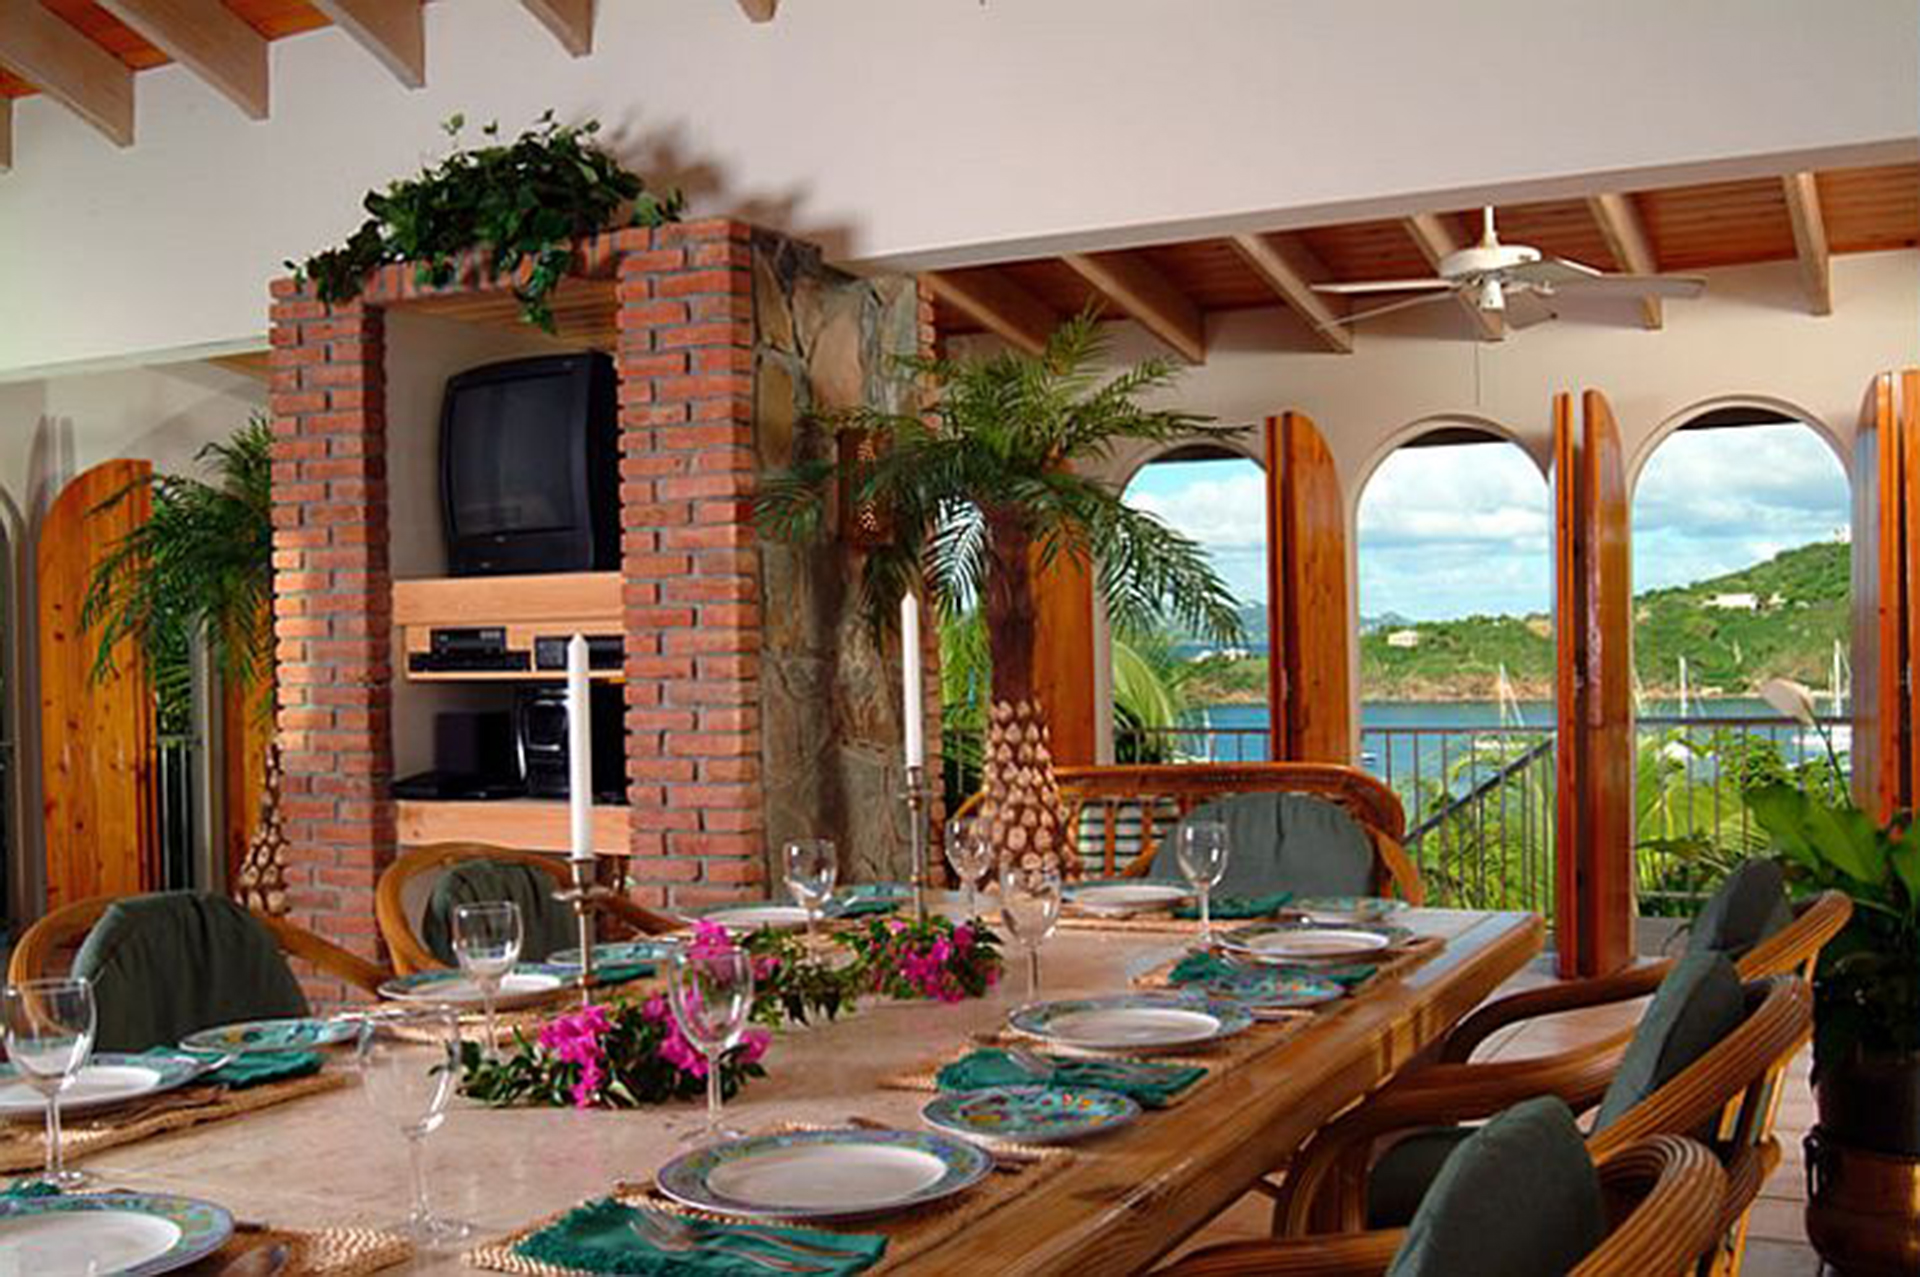 Dining-with-a-view.jpg